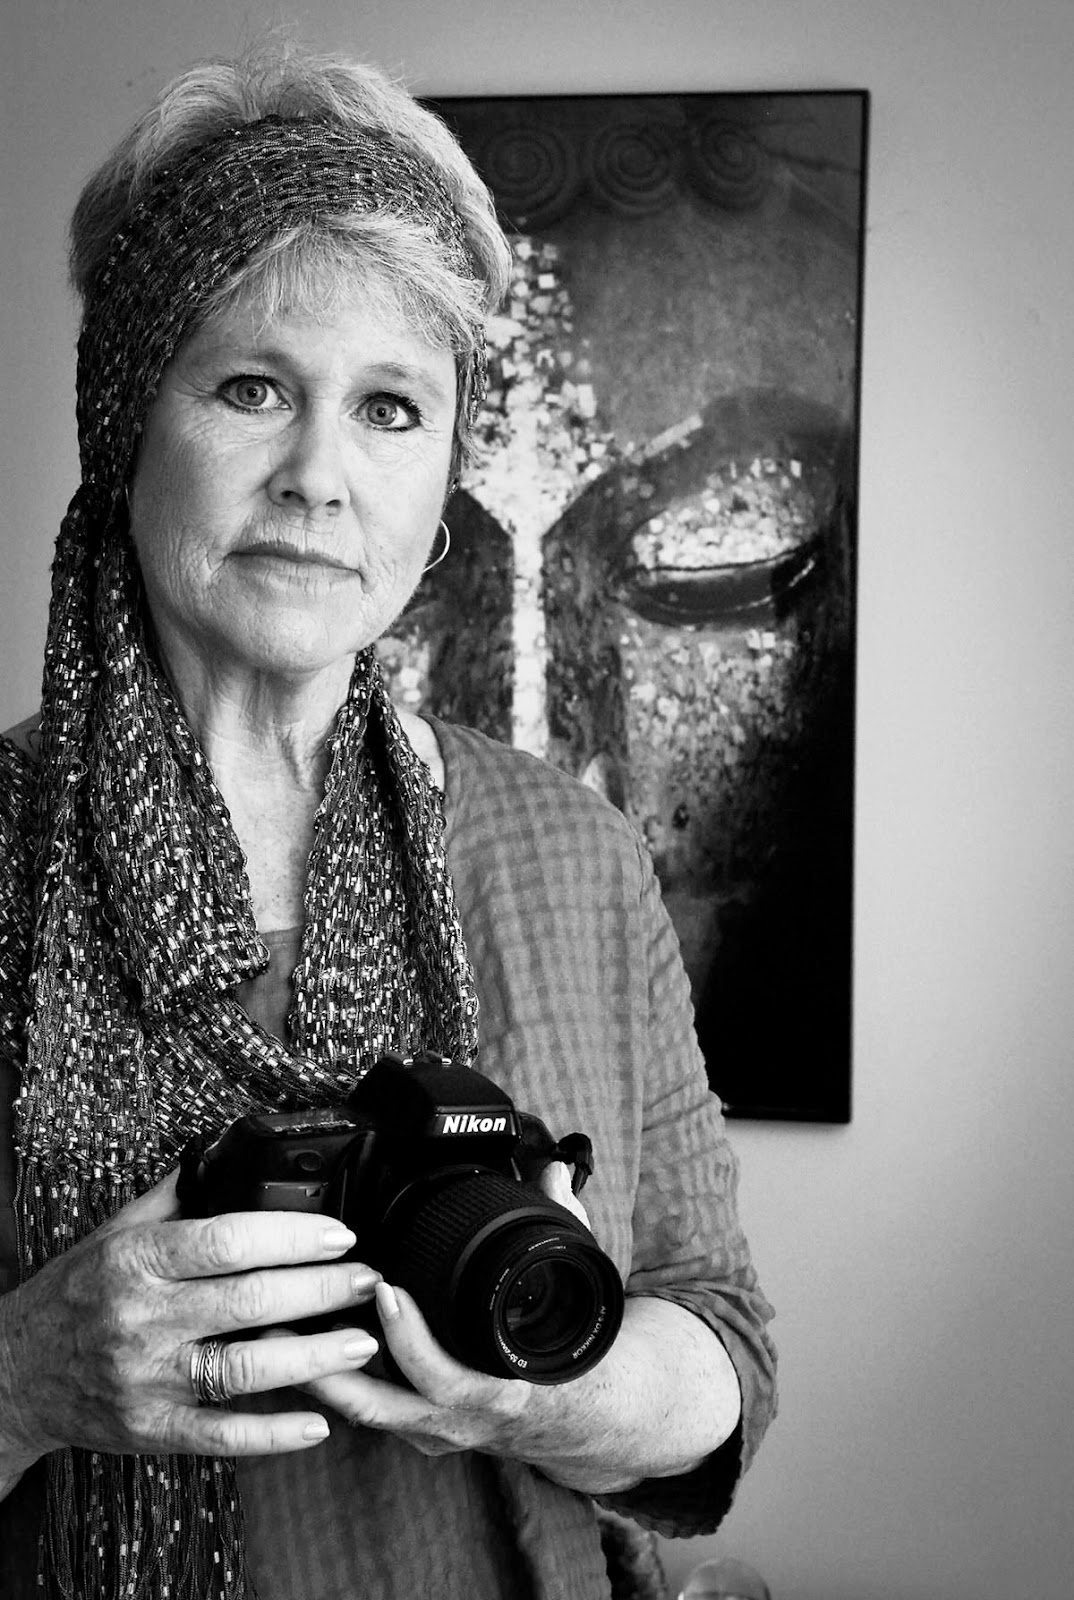 Lin Oakerson Photographer Tells Her Story